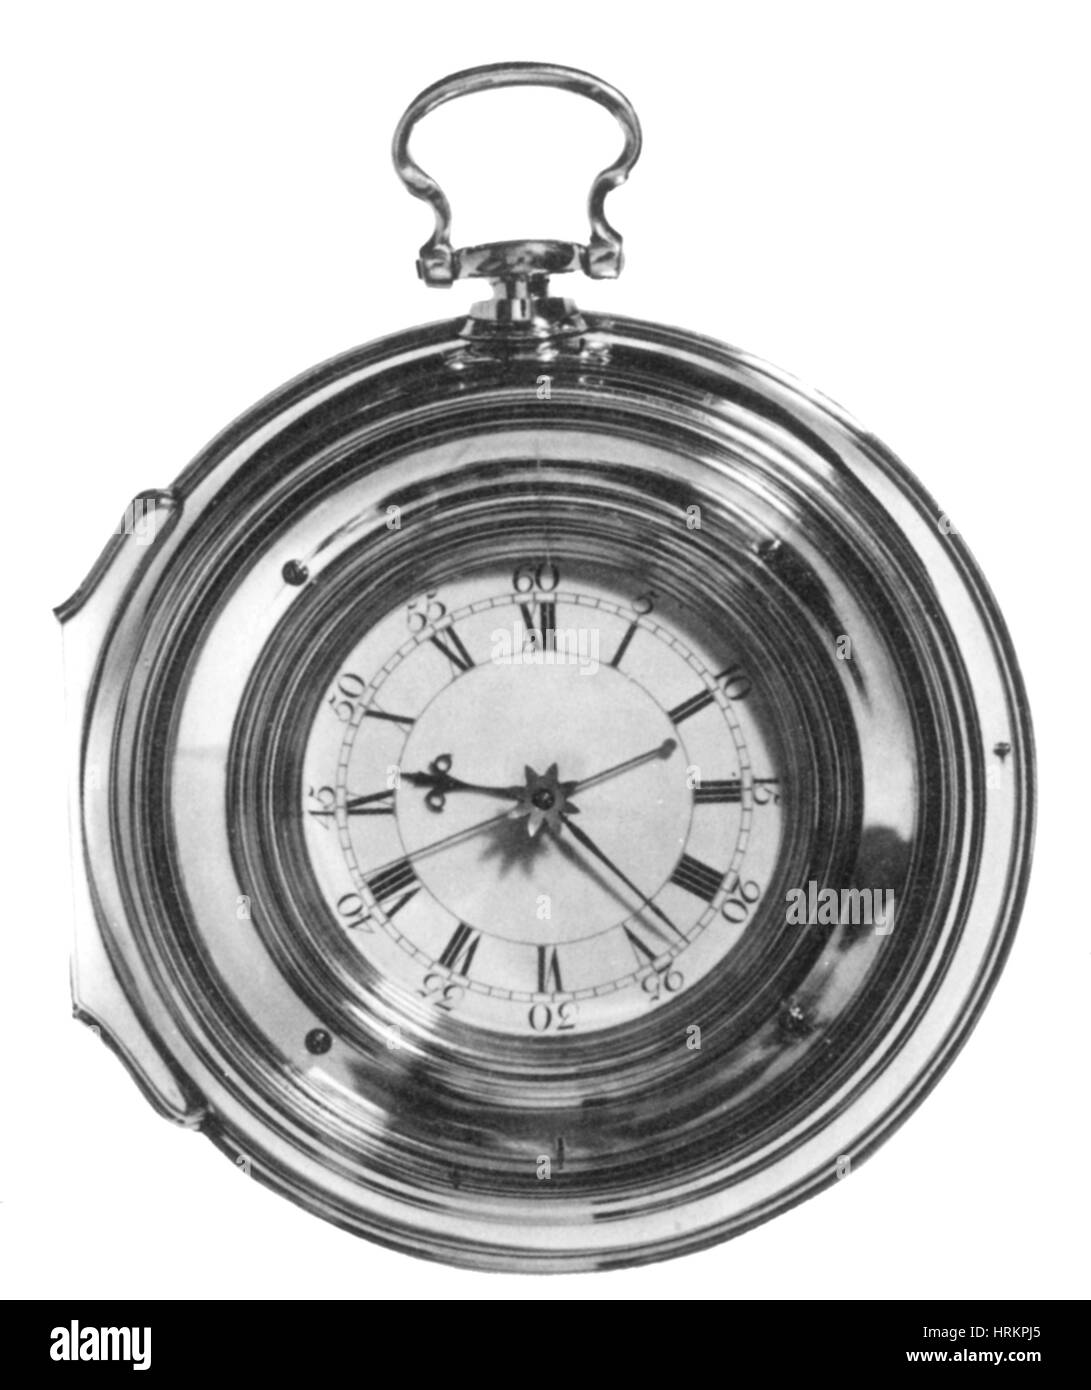 Harrison's Last Marine Timepiece, H.5 - Stock Image